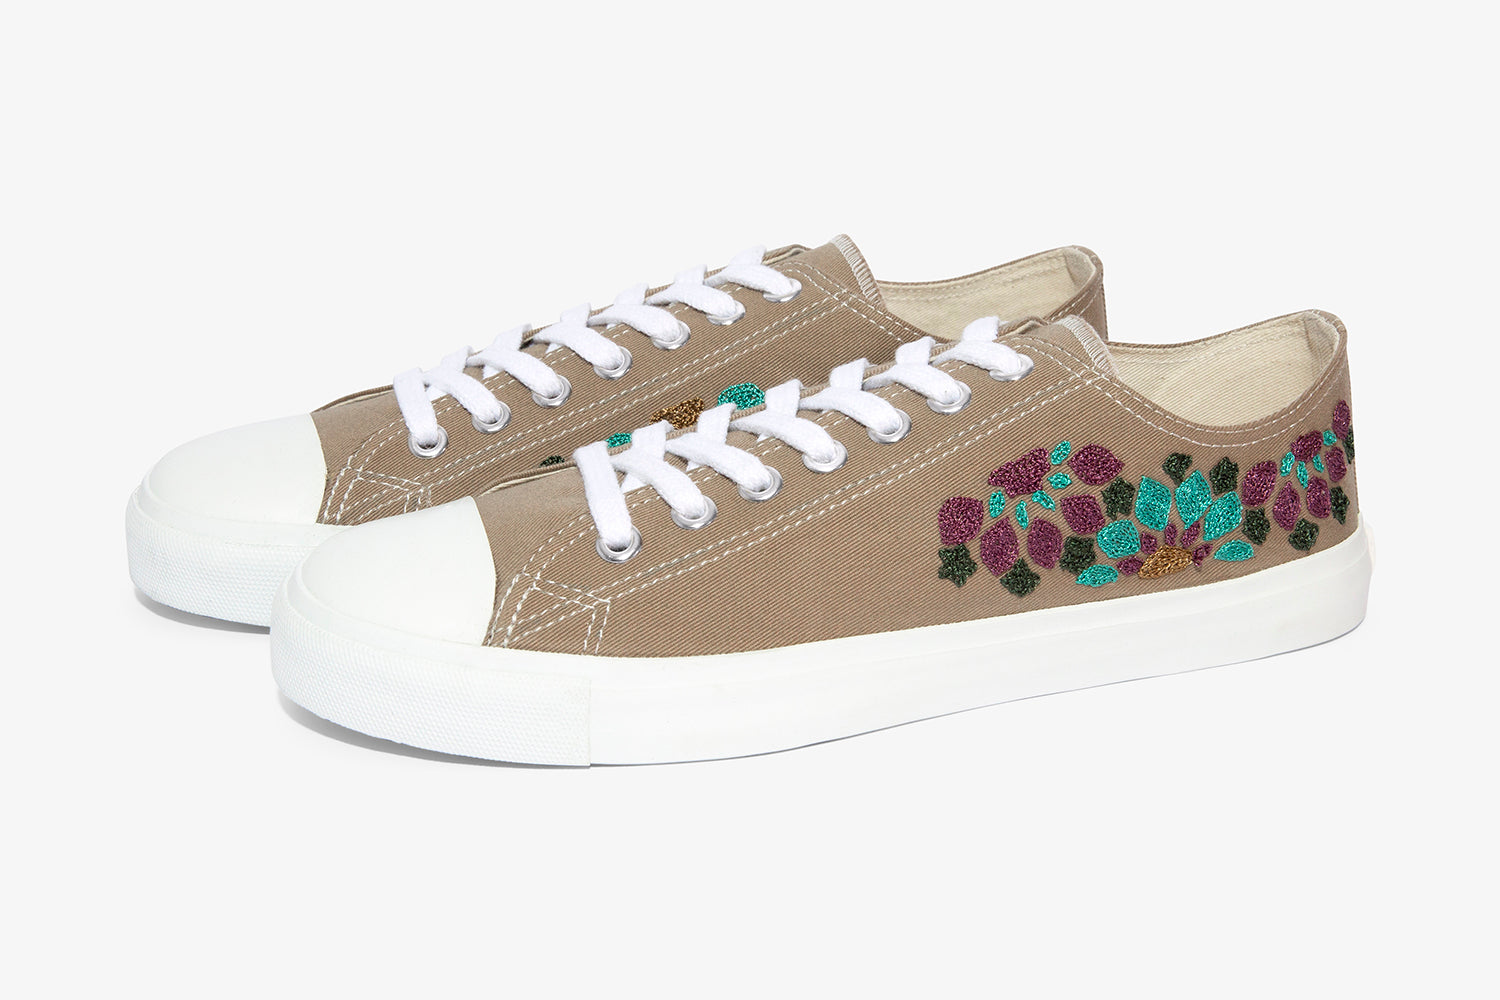 vegan shoes, low cut sneakers with hand embroidery